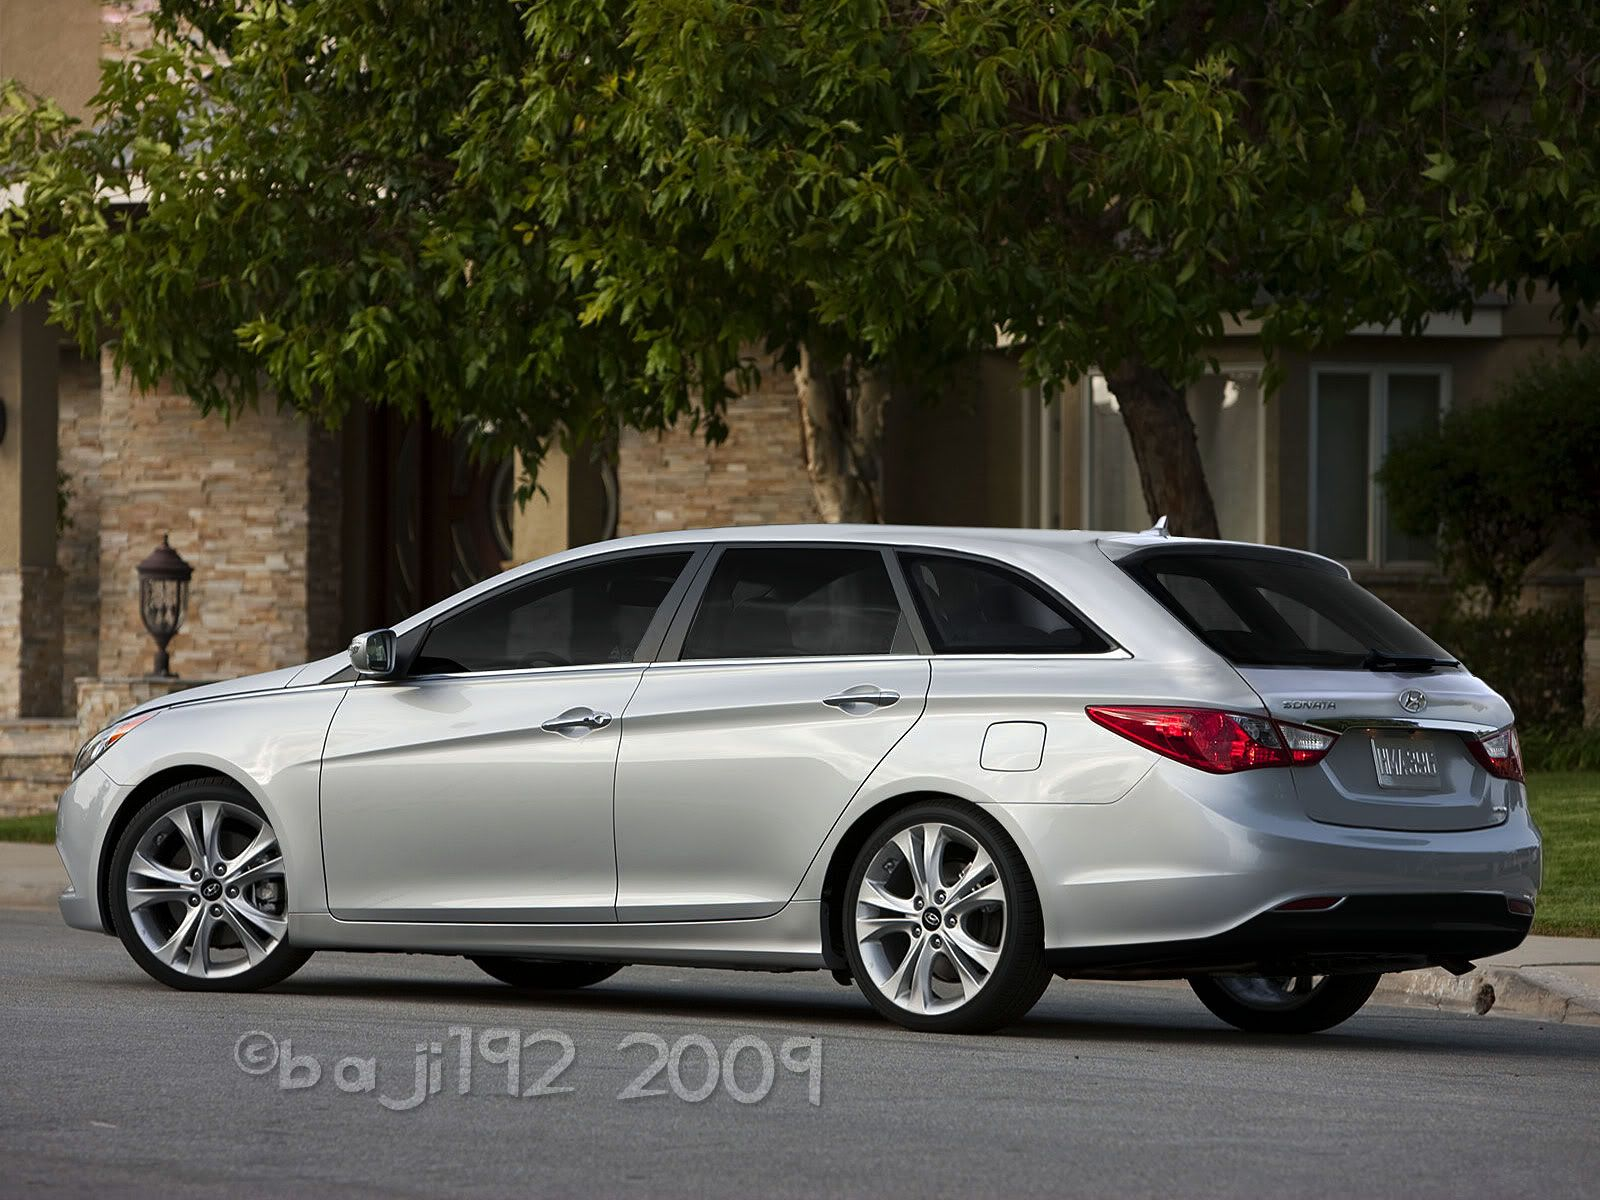 hyundai sonata shooting brake 2012 hyundai i40 tourer pinterest hyundai sonata. Black Bedroom Furniture Sets. Home Design Ideas